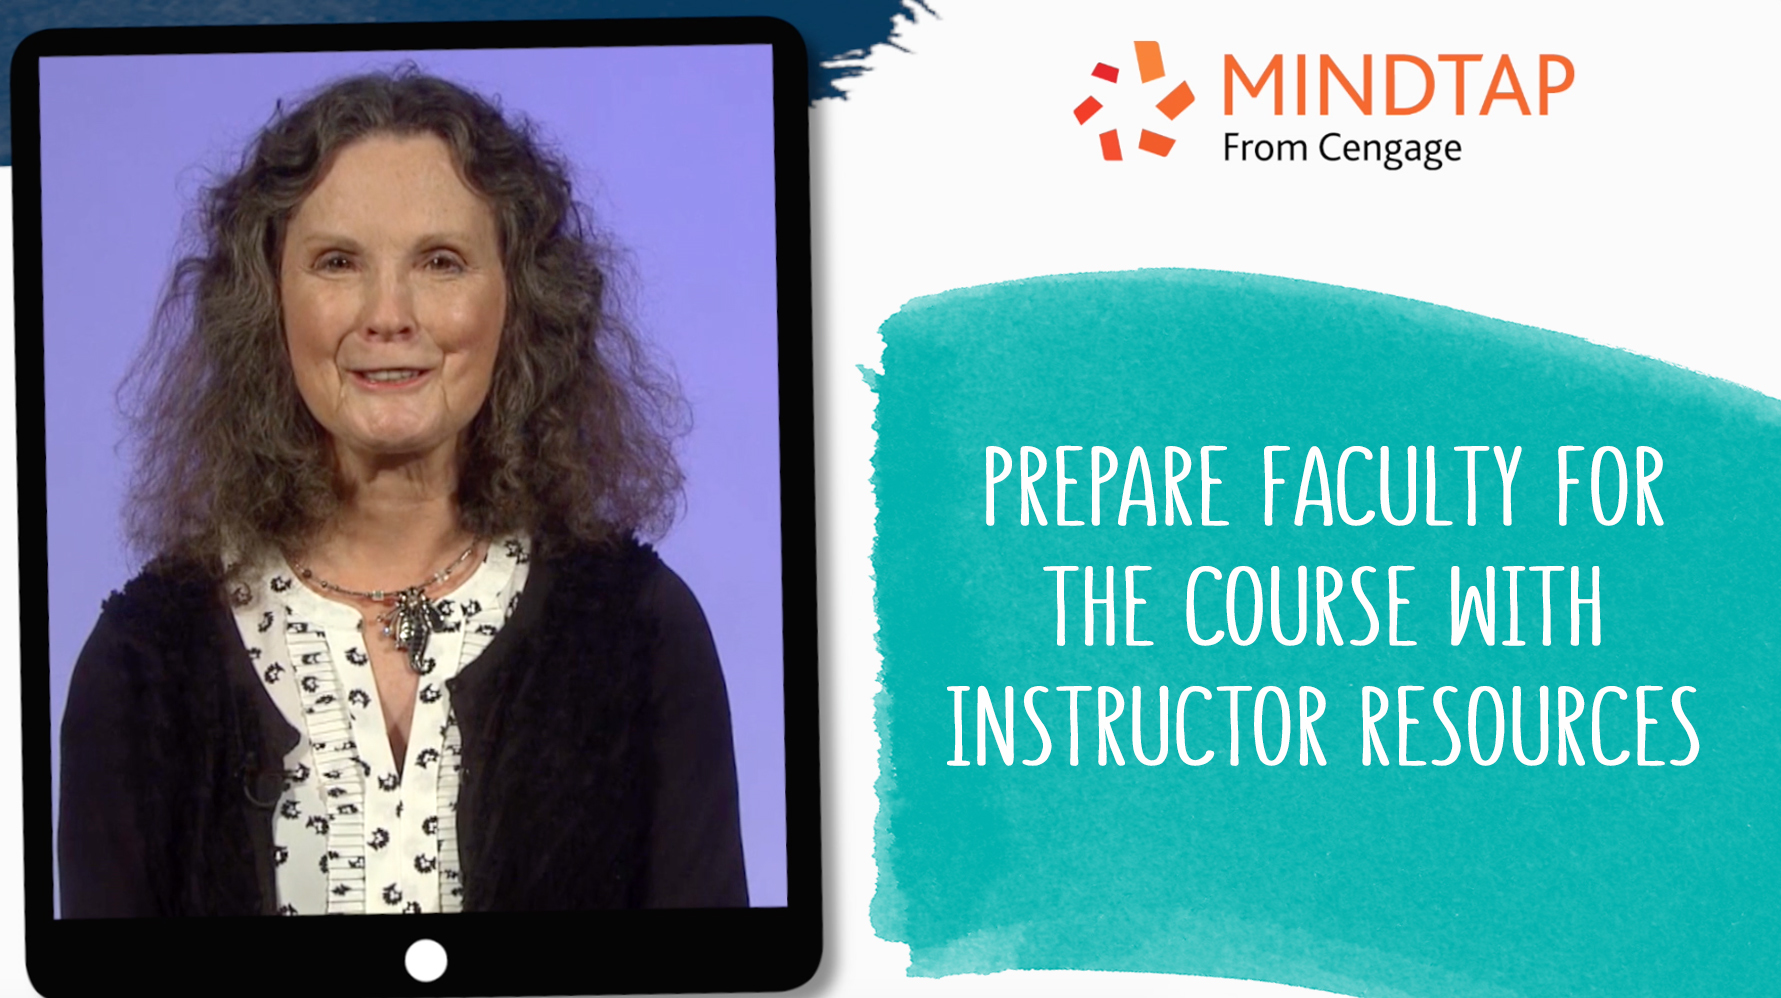 Prepare Faculty for the Course with Instructor Resources